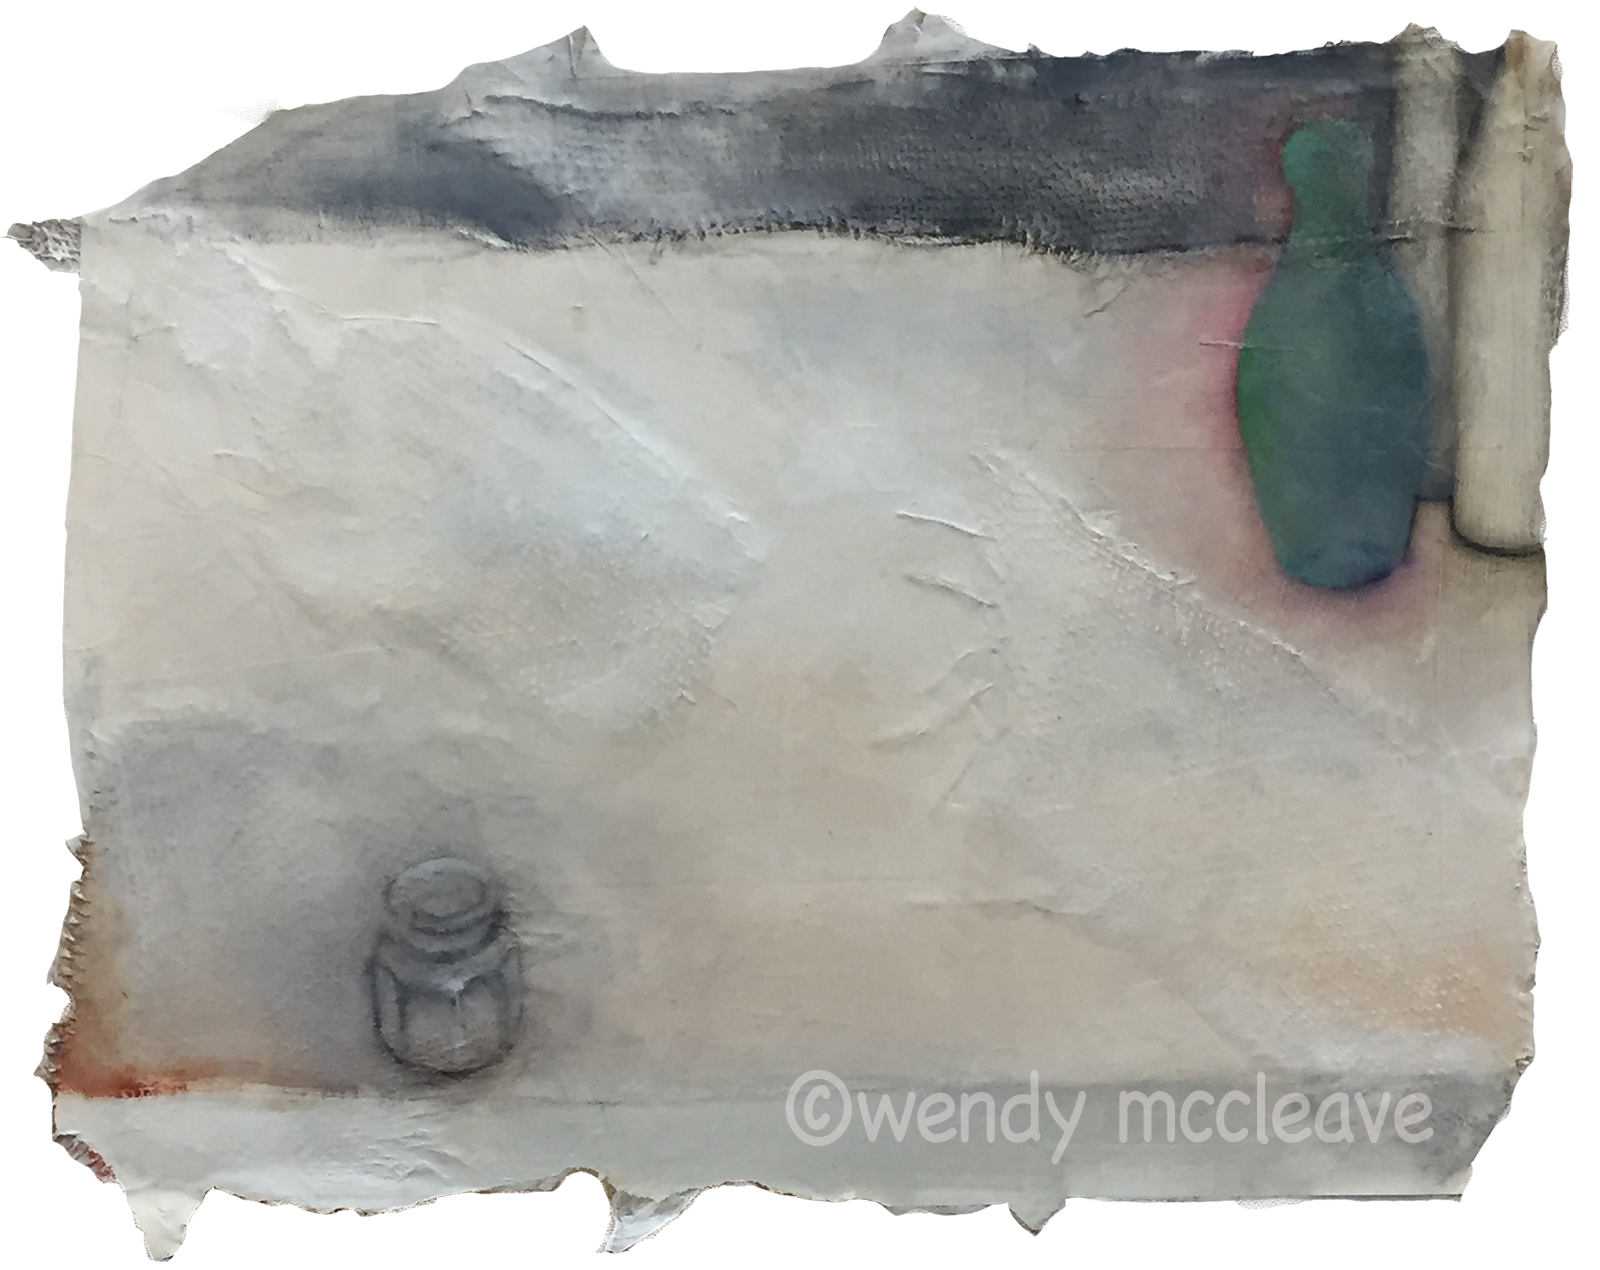 Mixed media still life painting of small jar isolated in foreground from group of old bottles in background